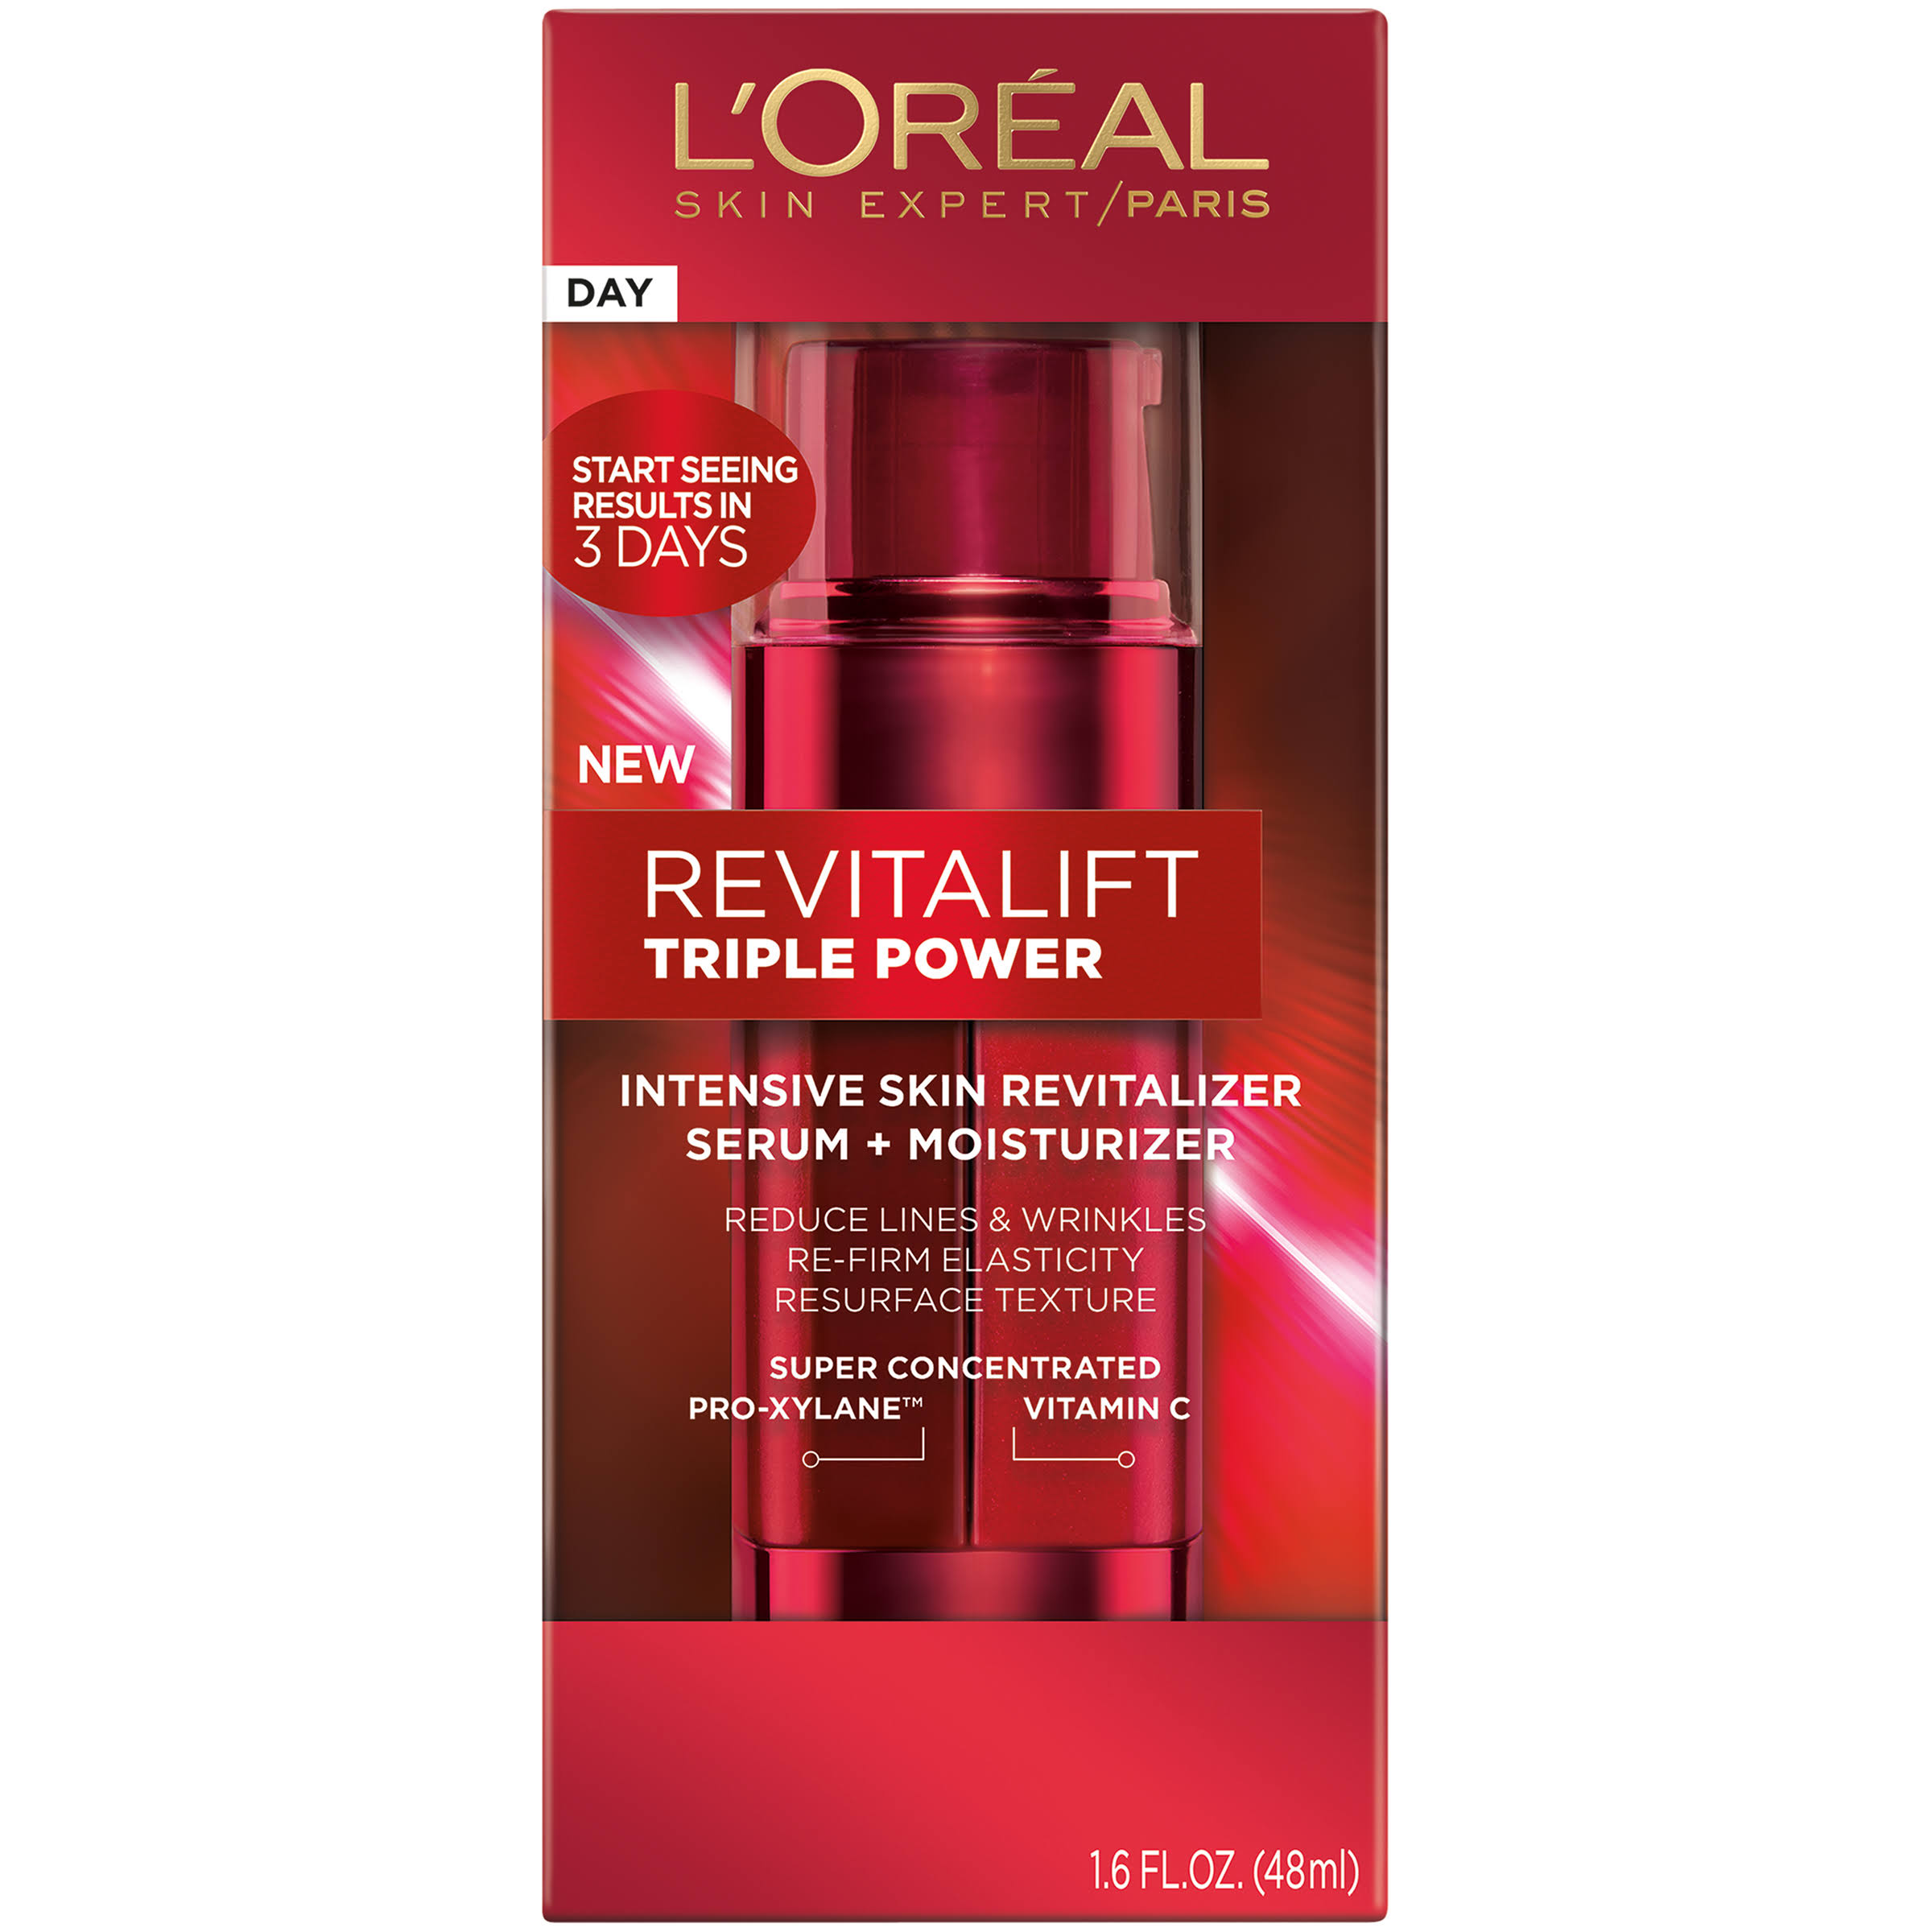 L'Oreal Paris Revitalift Triple Power Intensive Skin Revitalizer Serum & Moisturizer - 1.6 fl oz tube